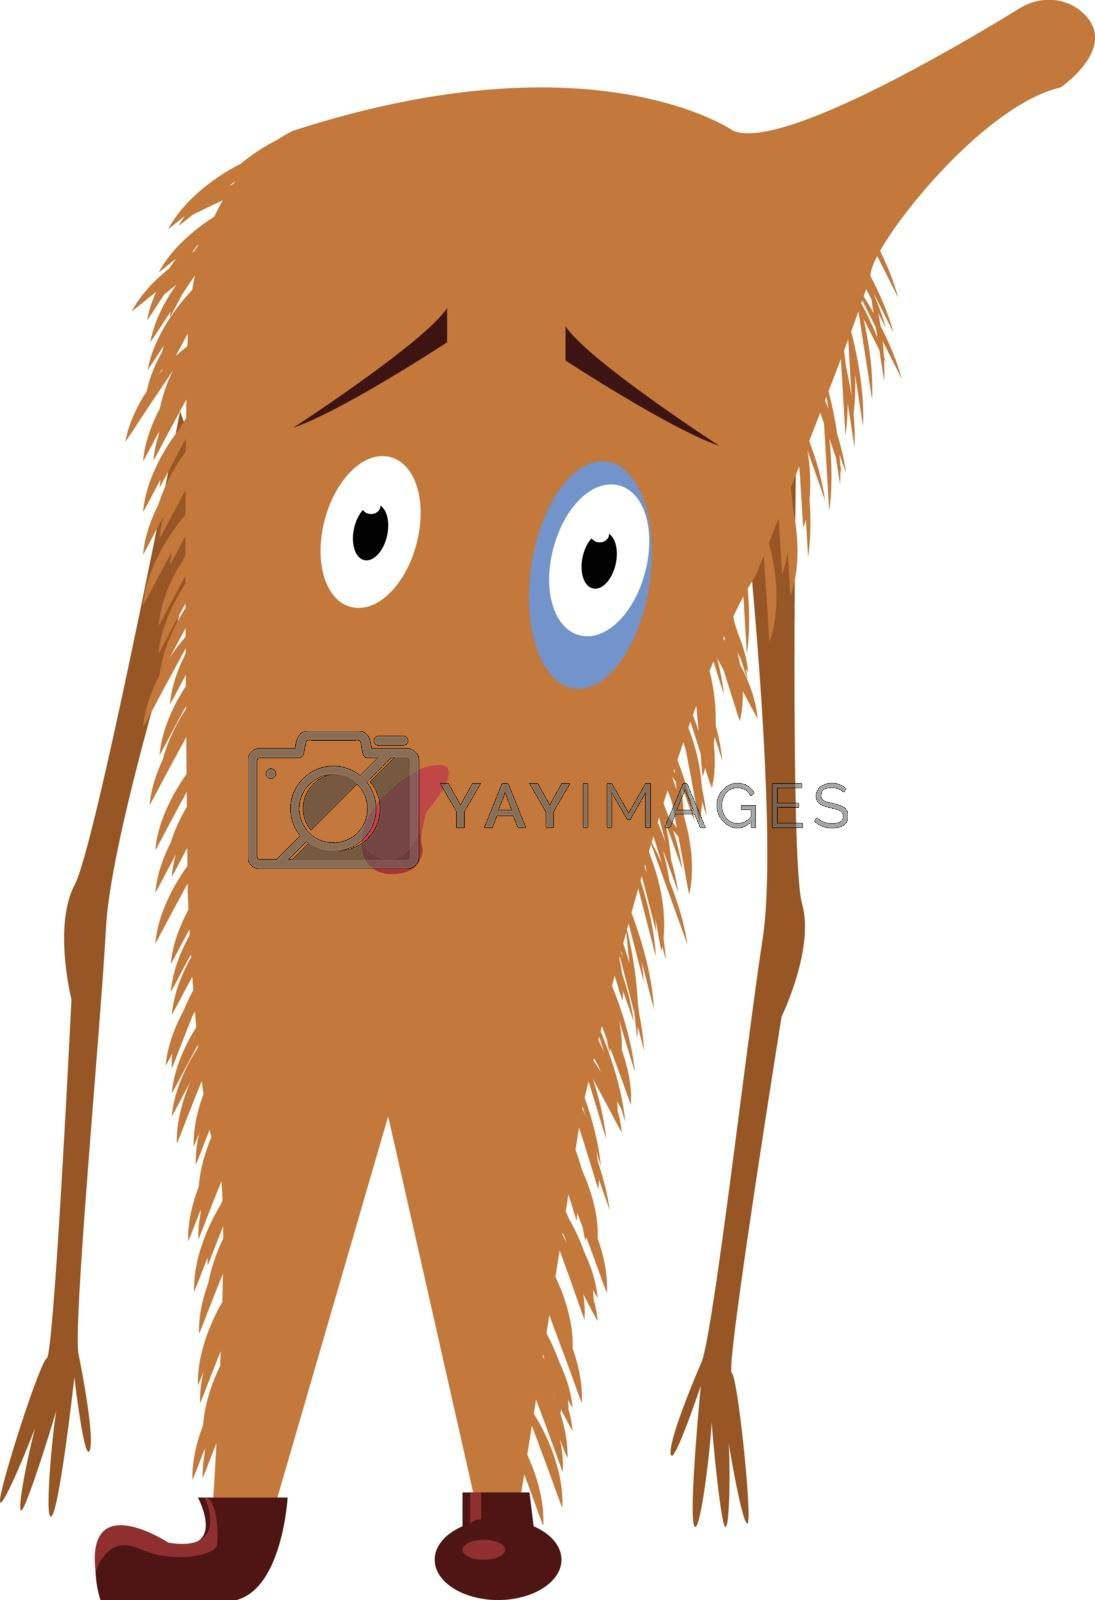 Royalty free image of Emoji of a sad brown-colored monster set on isolated white backg by Morphart